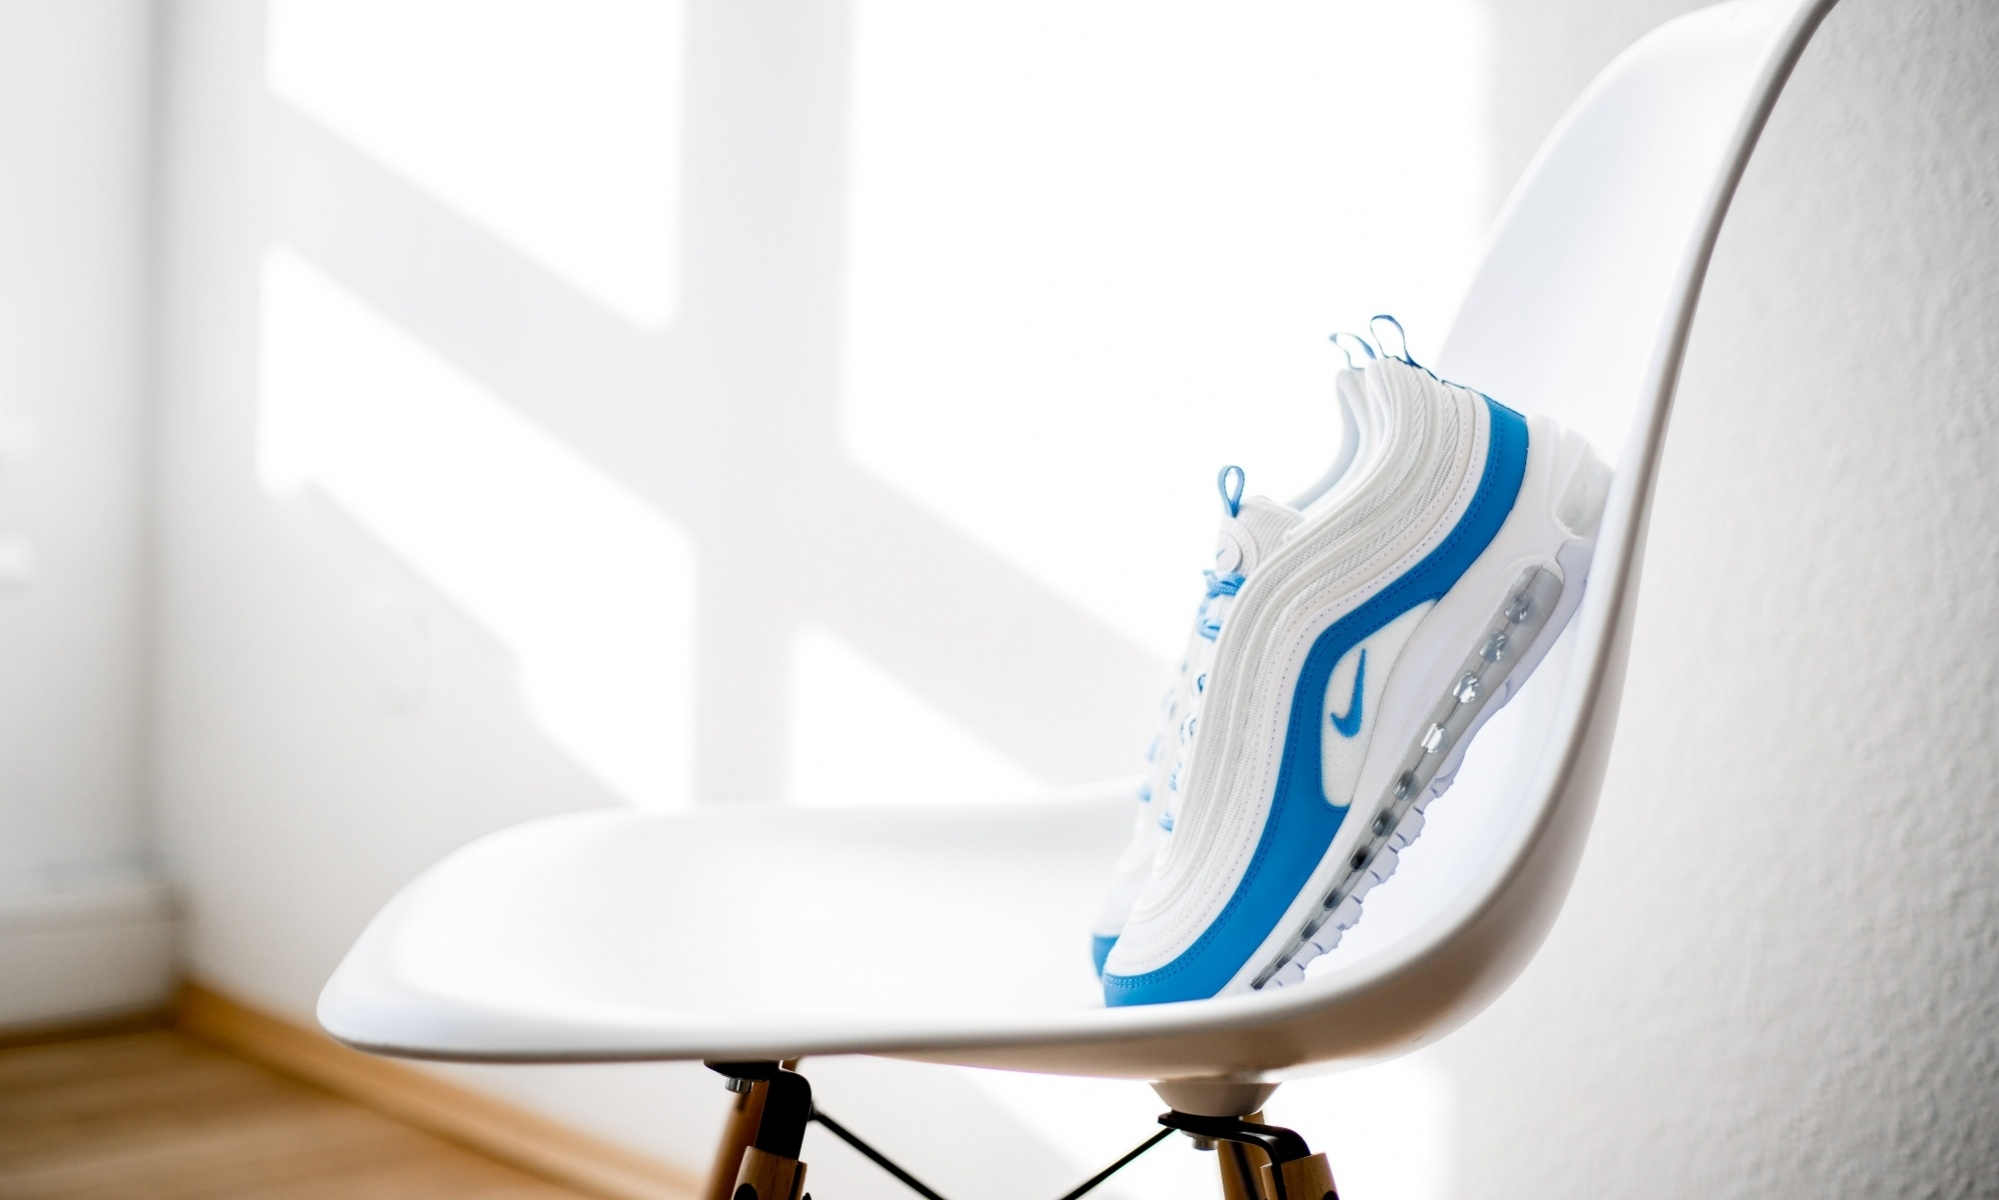 Nike air max 97 sale kinder Standard mcb price